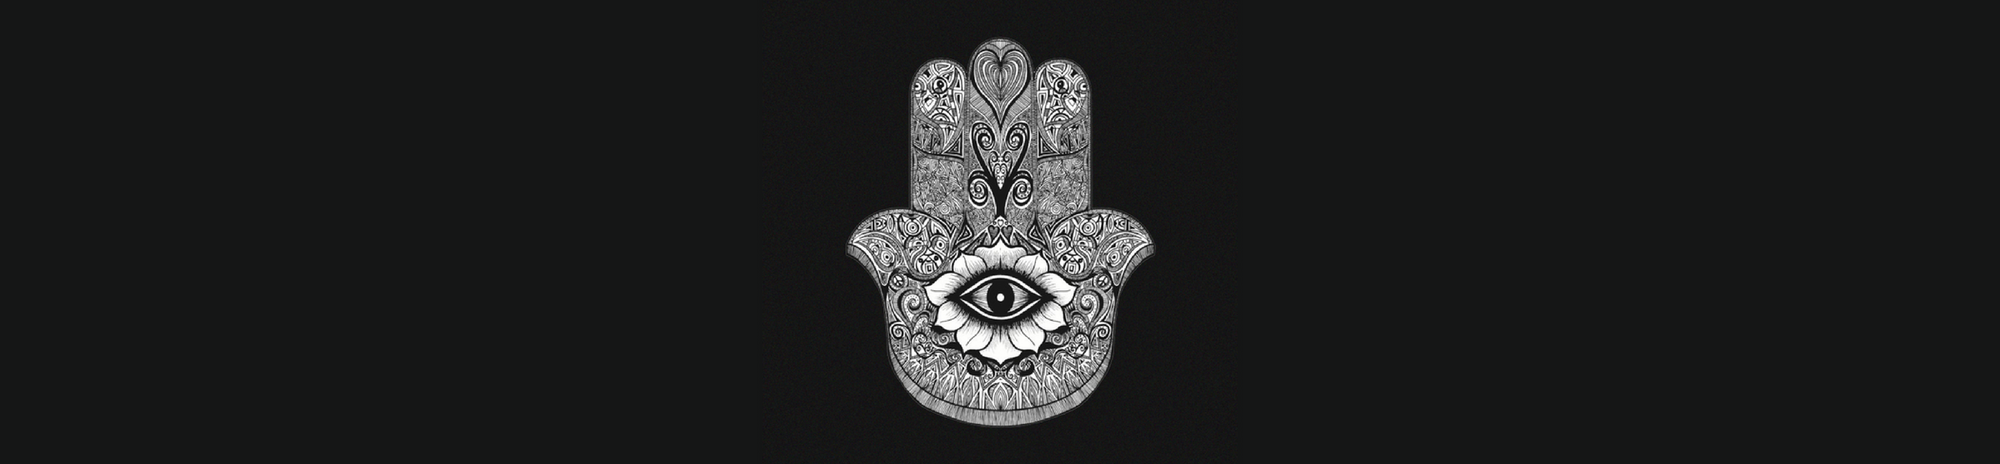 Meaning of the Hamsa, Kashgar